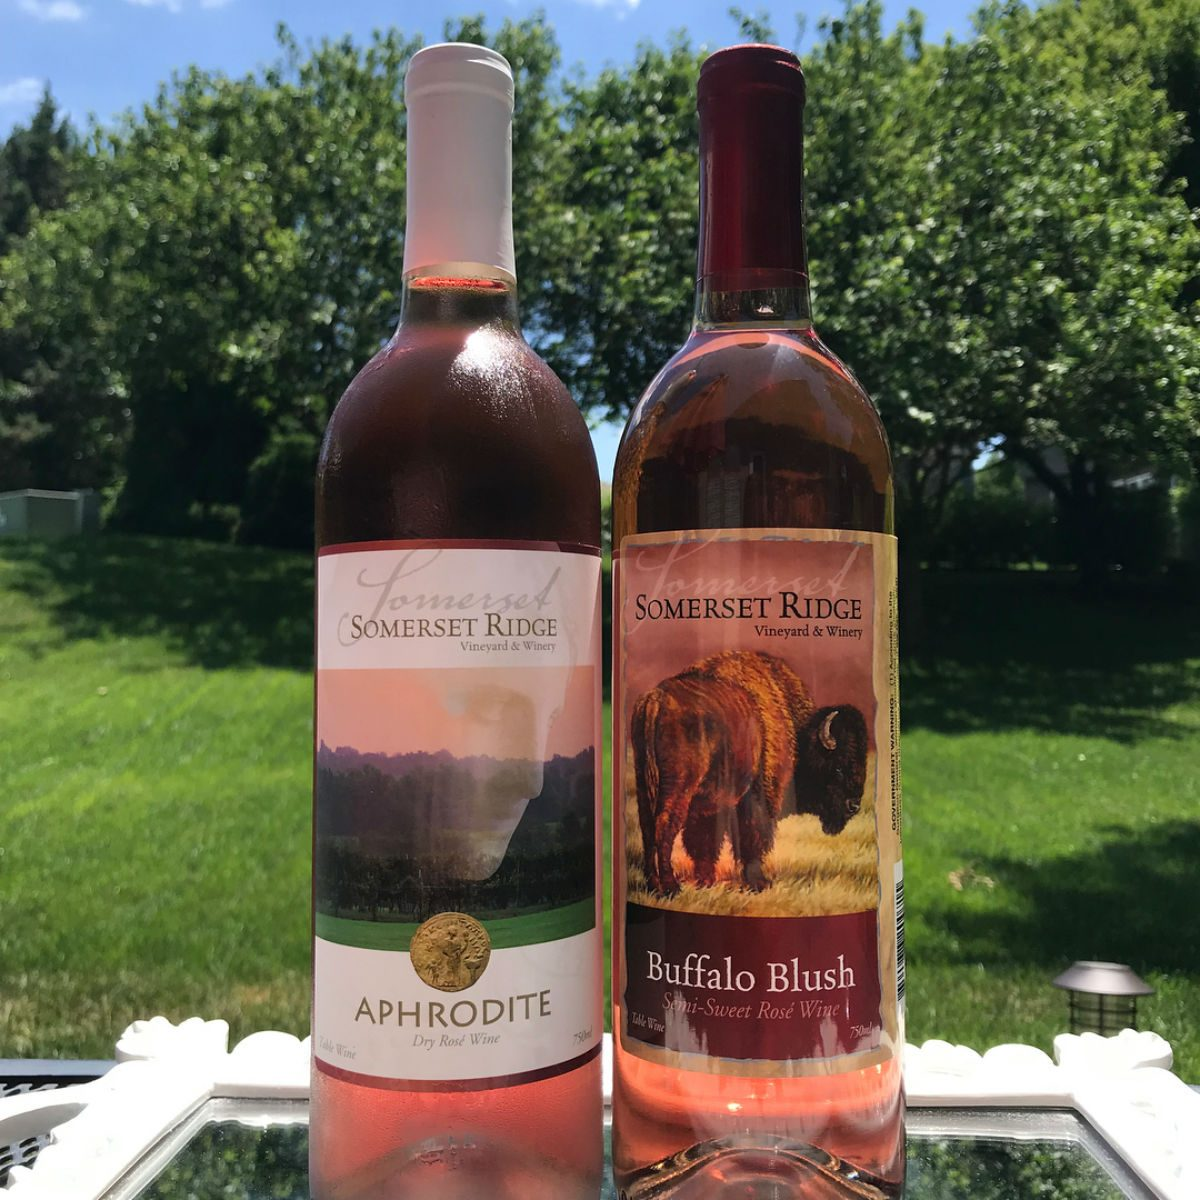 Two wine bottles at Somerset Ridge Vineyard & Winery